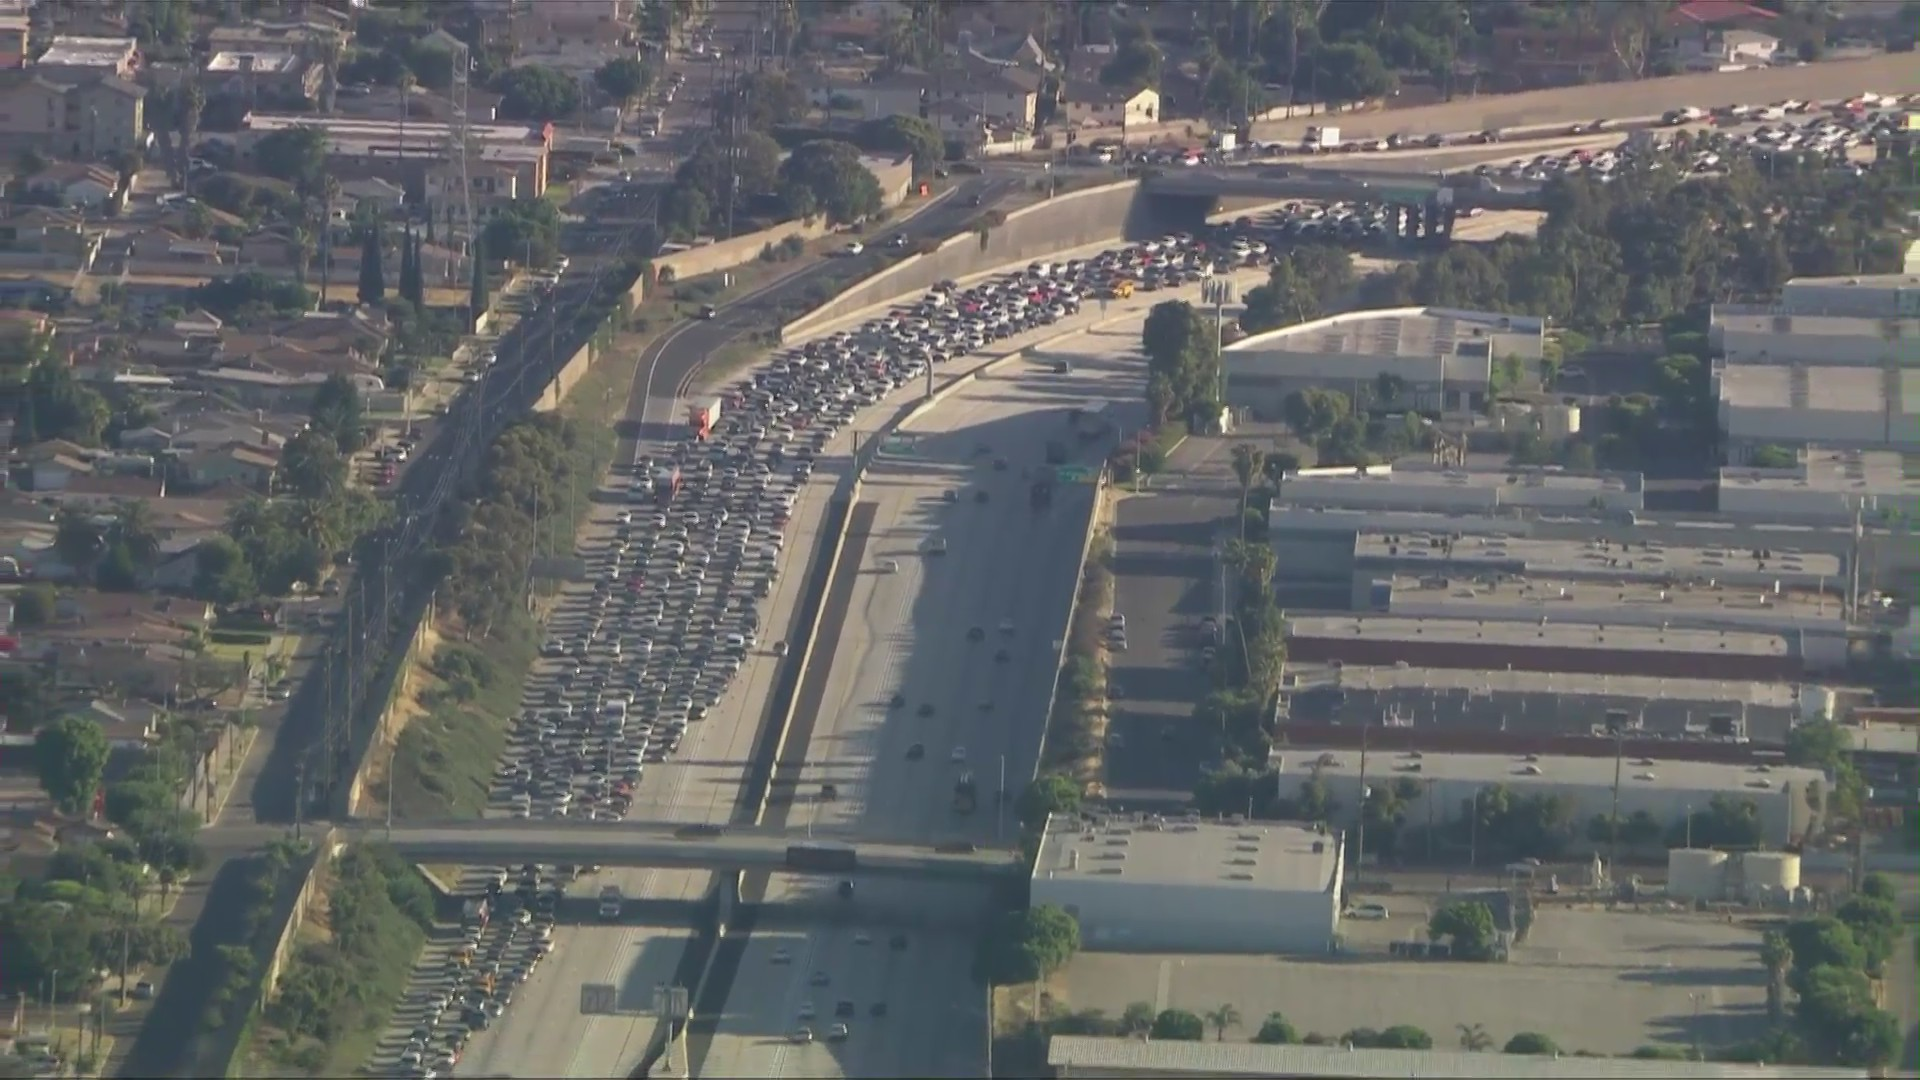 Traffic is backed up for miles on the southbound 110 Freeway in the Gardena area on June 10, 2020. (Sky5)